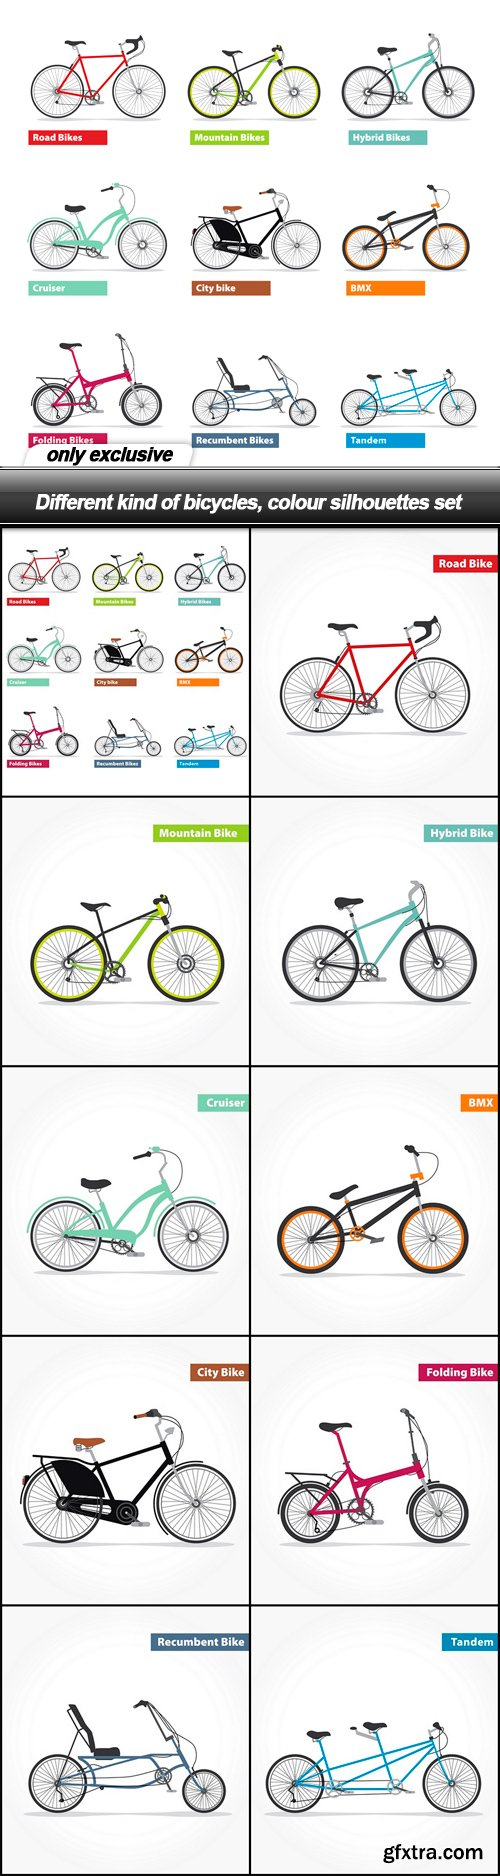 Different kind of bicycles, colour silhouettes set - 10 EPS